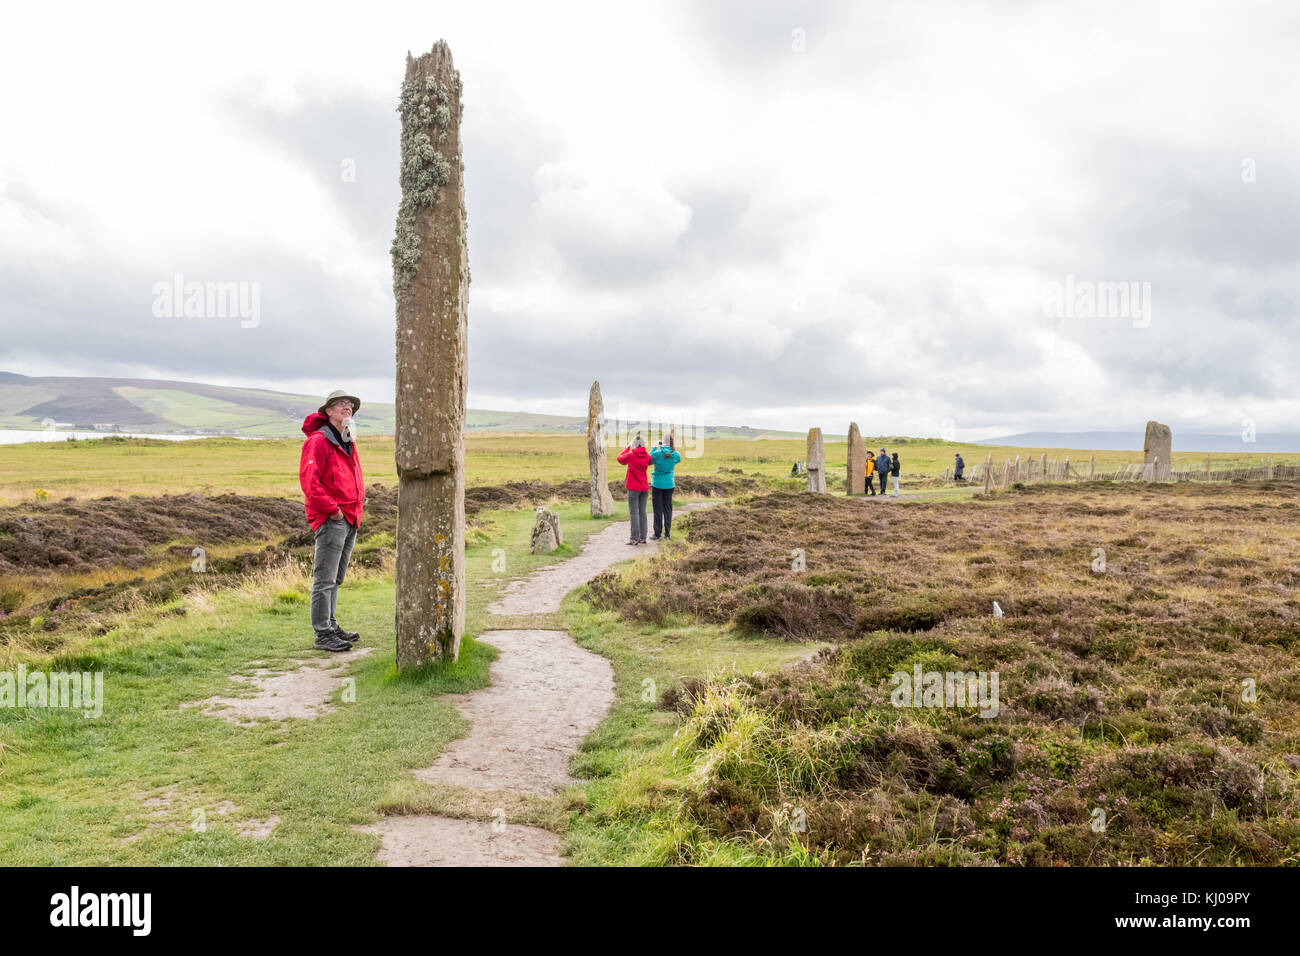 tourists at the Ring of Brodgar Neolithic henge and stone circle, Stromness, Mainland Orkney, Scotland, UK - Stock Image